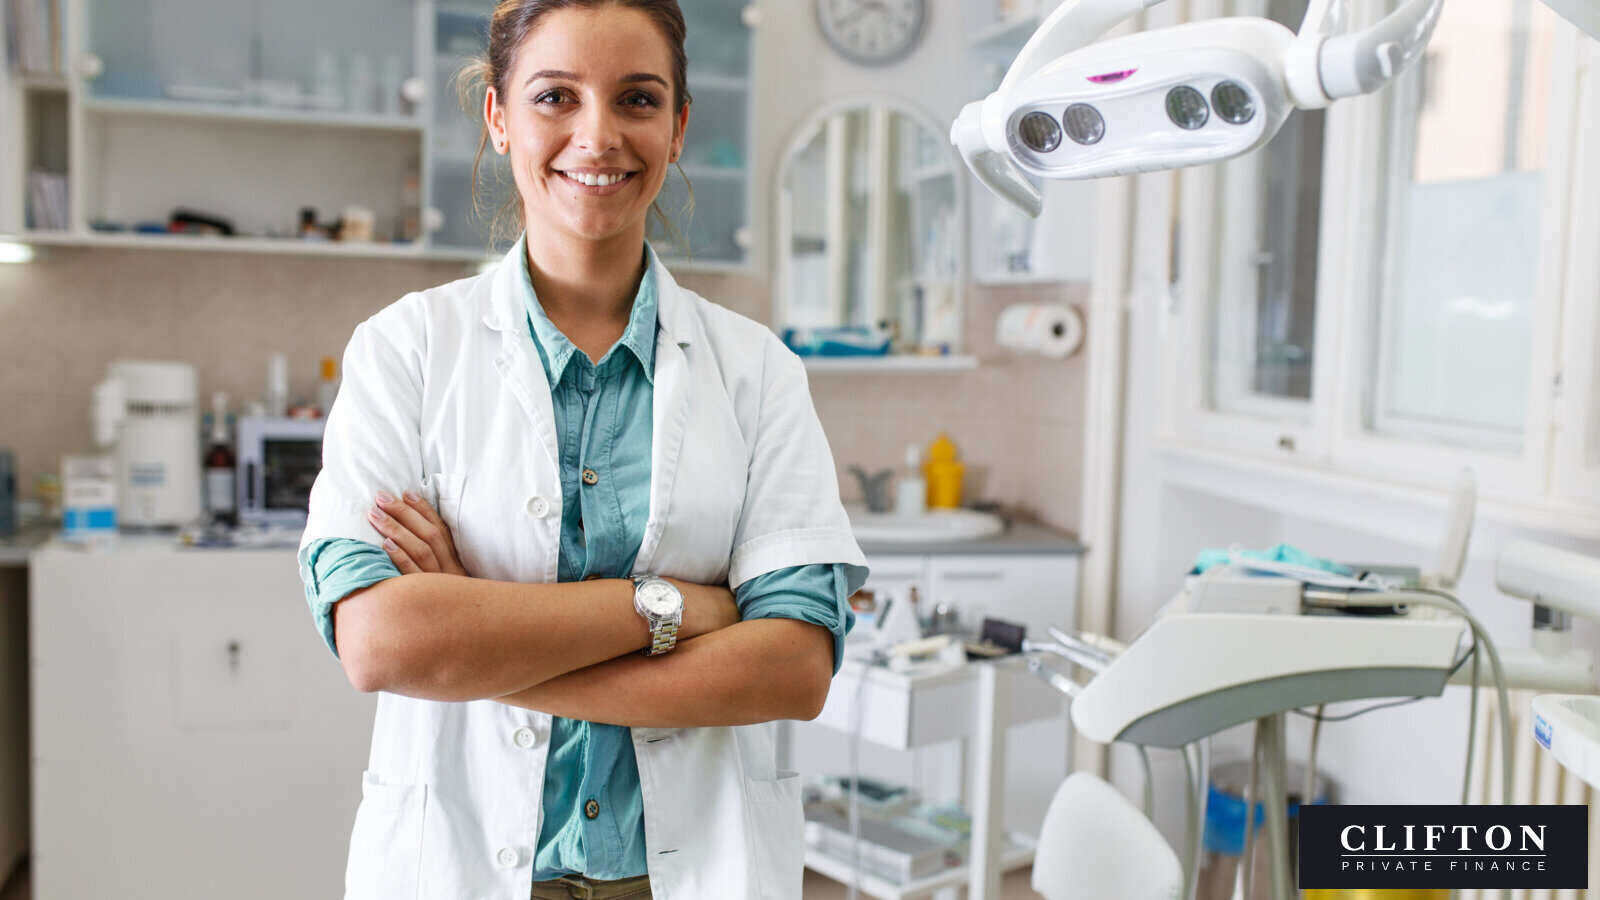 Mortgages For Dentists: How Much Can I Borrow?